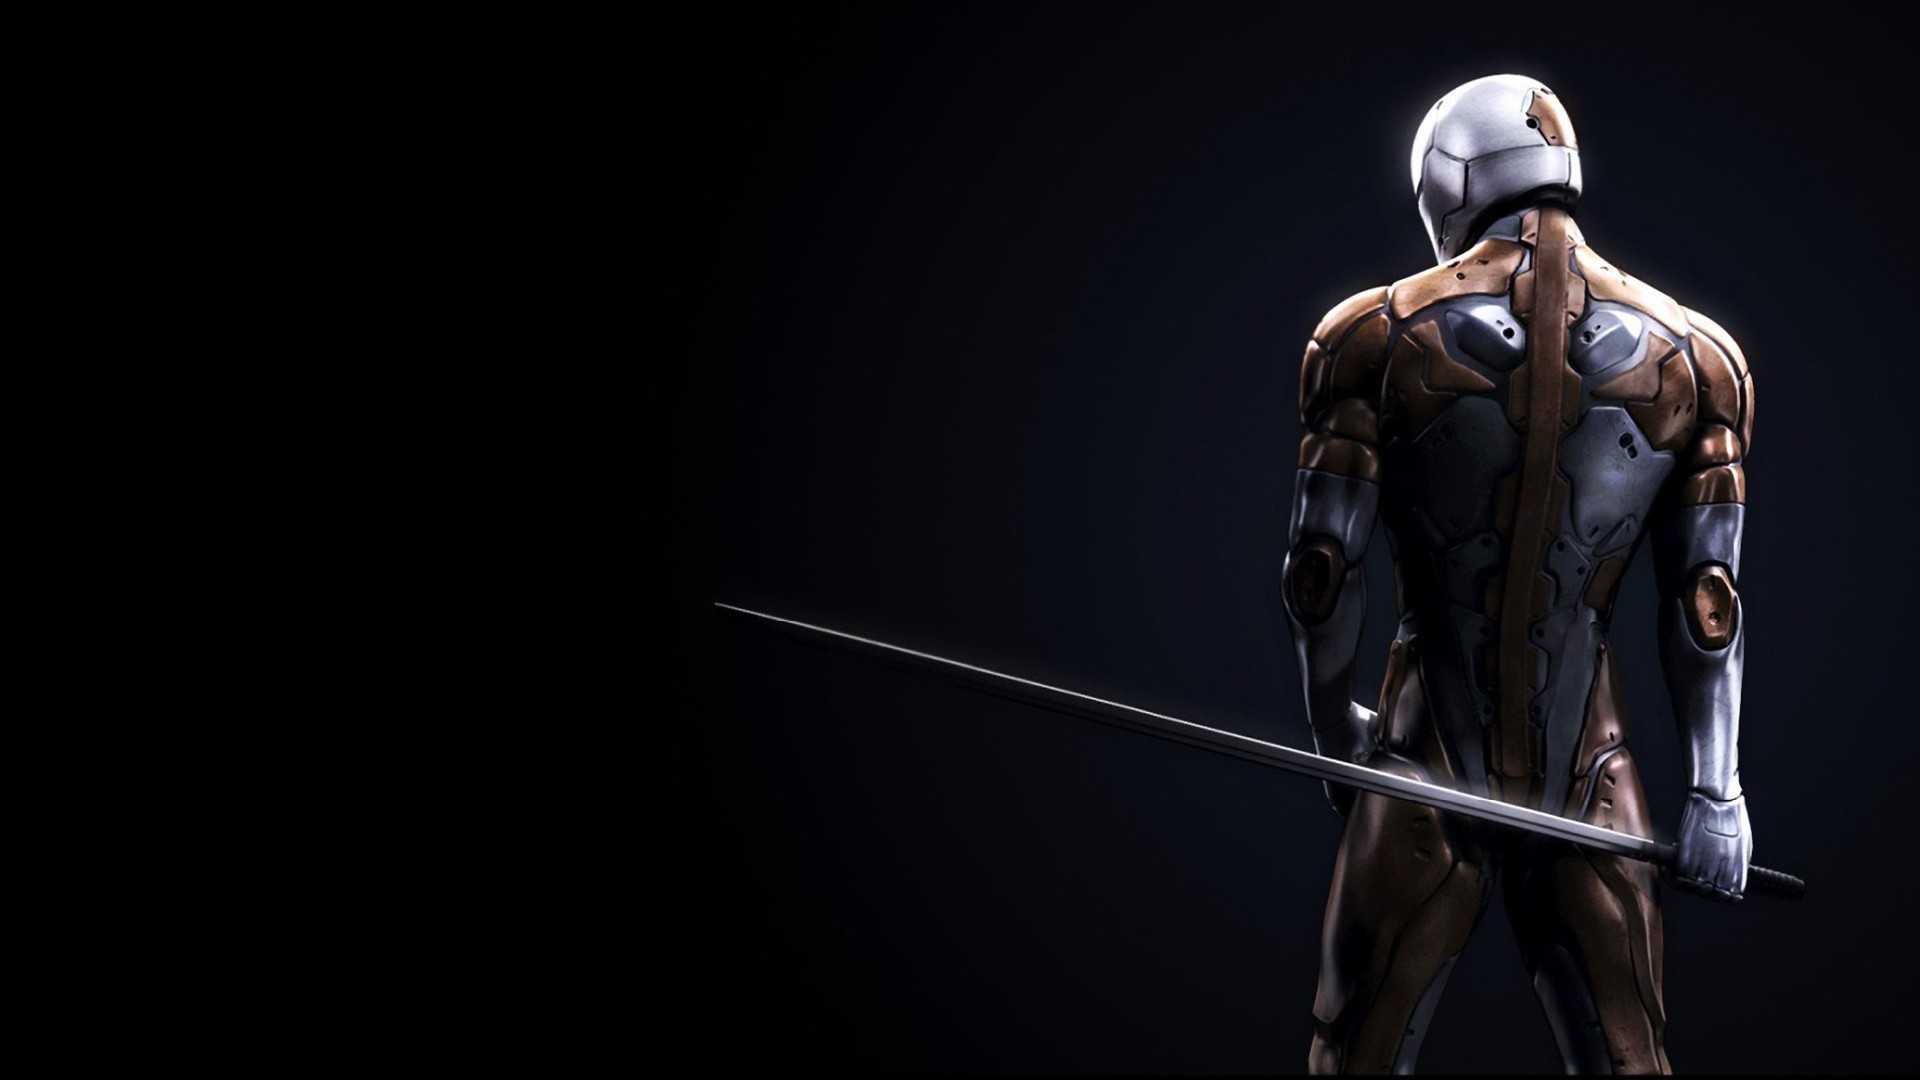 Res: 1920x1080, Metal Gear Solid 5 Wallpapers Hd